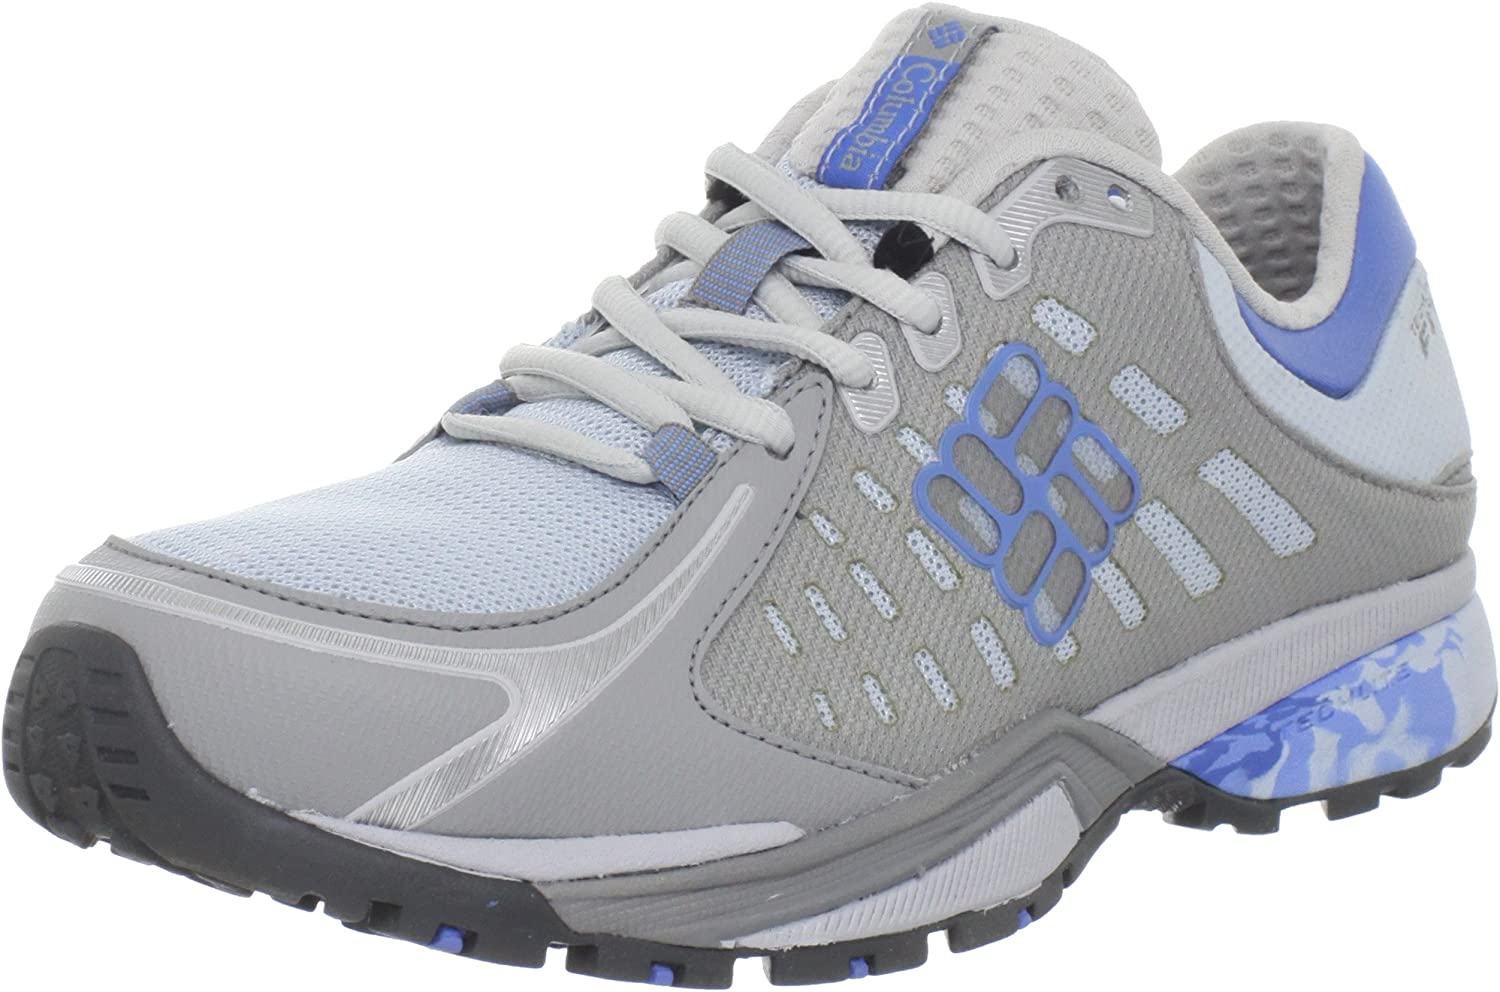 Columbia Sportswear Women's Peakfreak Low Hiking Shoe